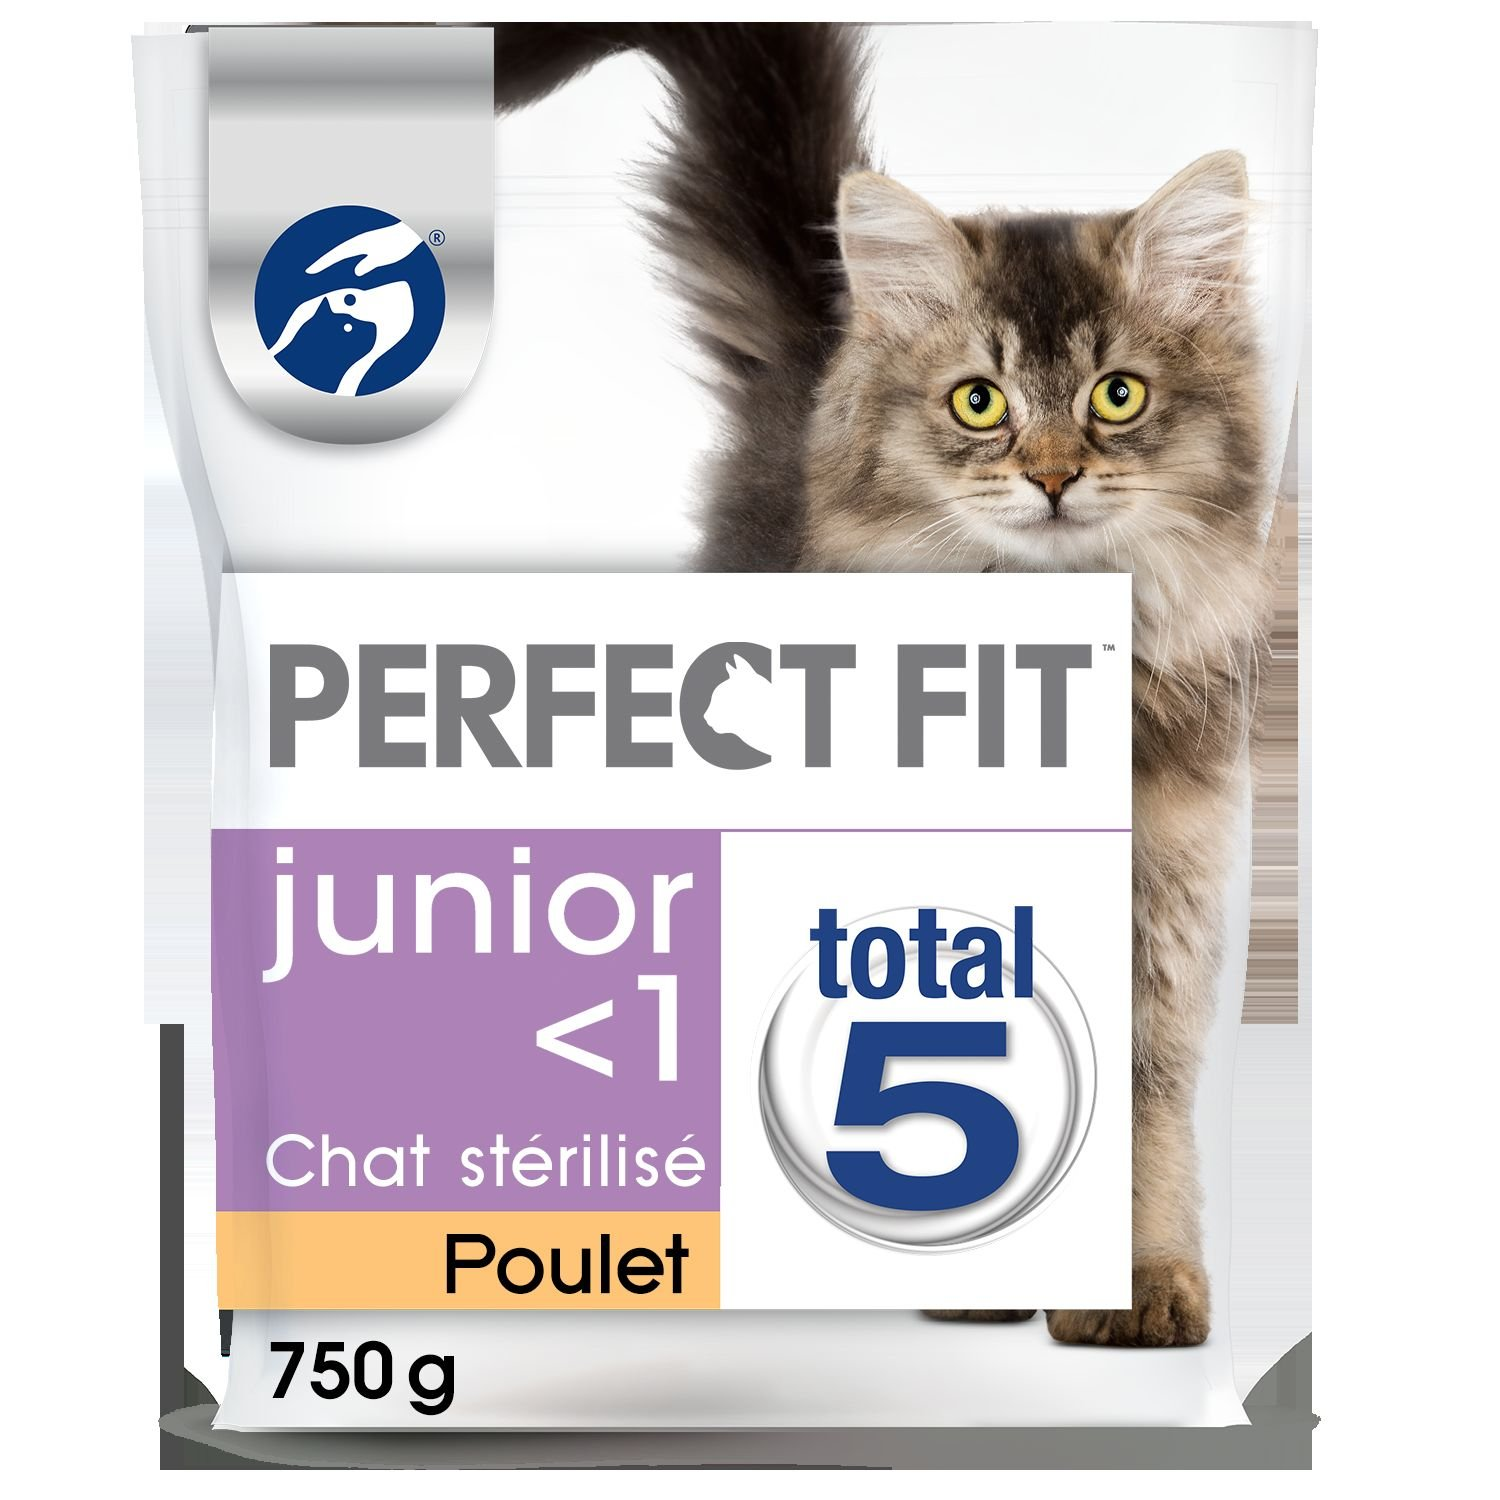 PERFECT FIT JUNIOR STERILISE - Croquettes au poulet pour chaton 750g - lot de 5 (3, 75kg) 4008429088483